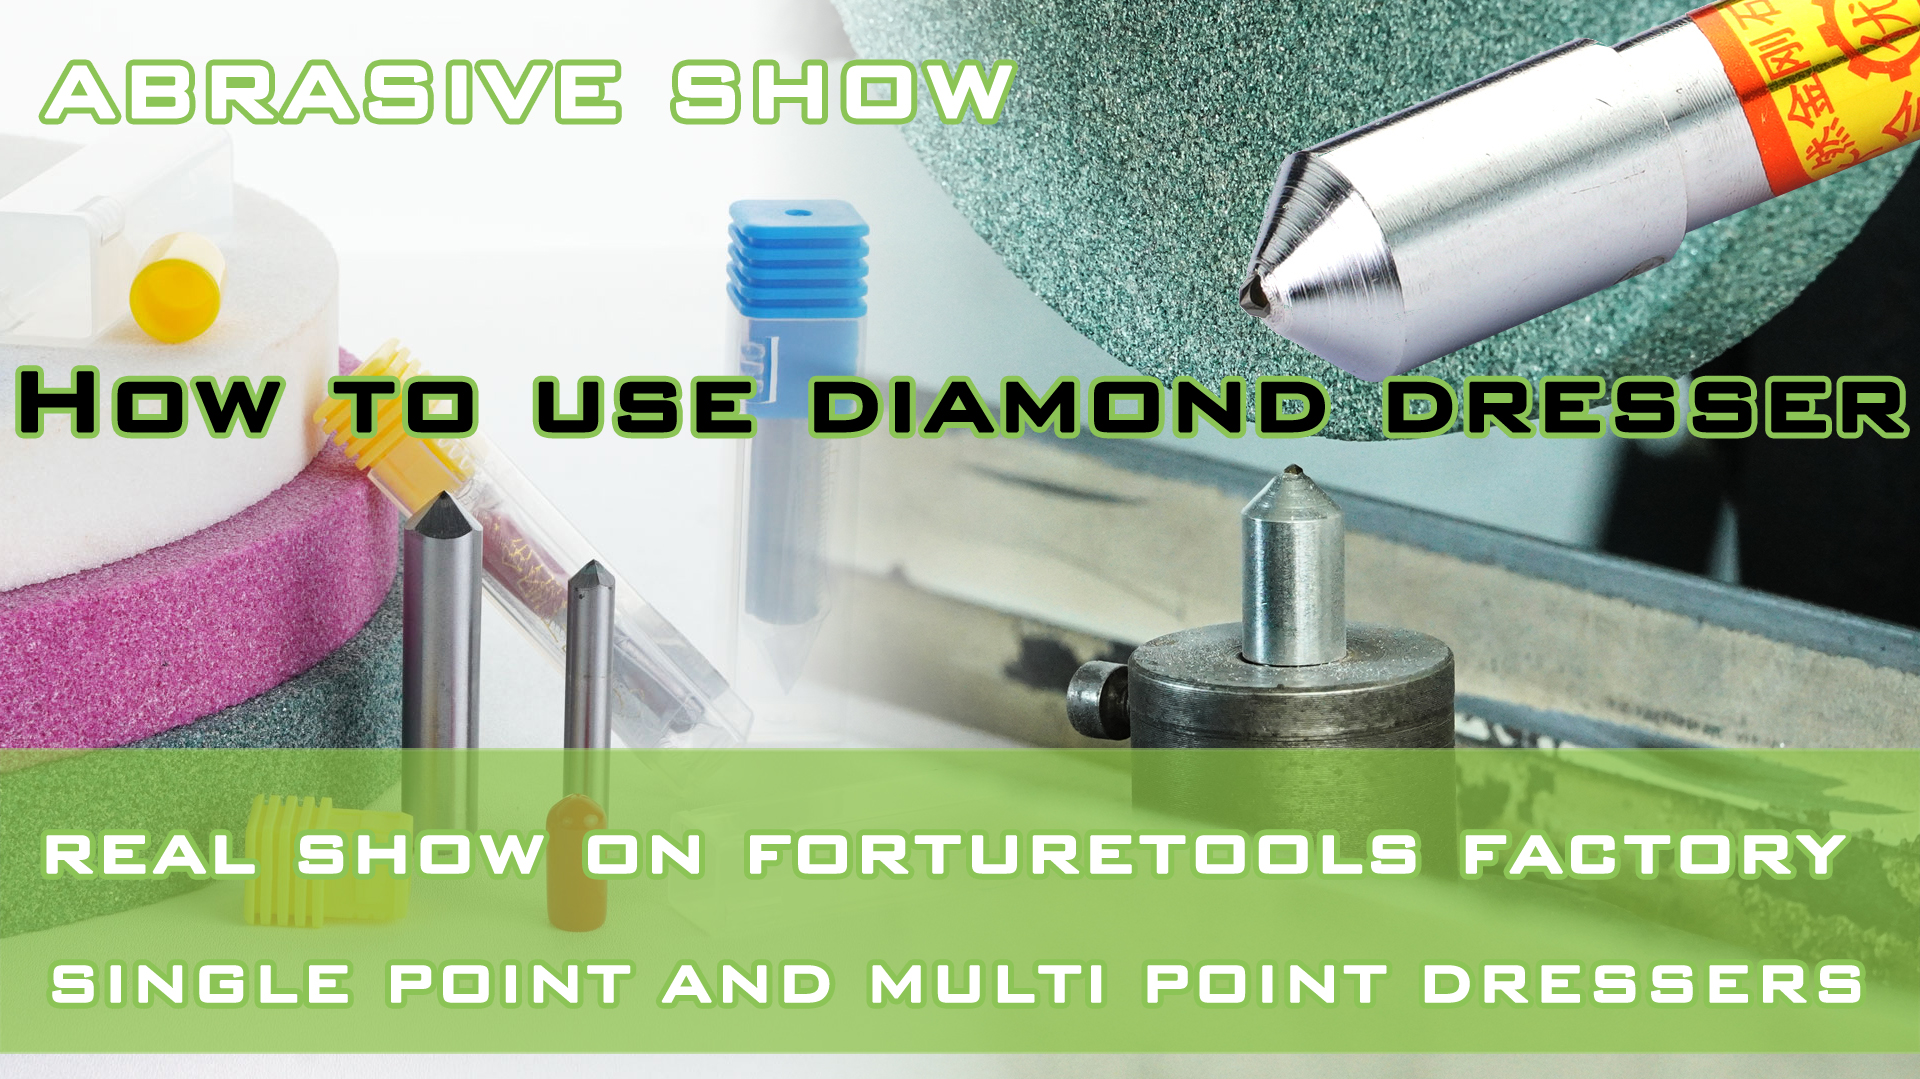 How to use diamond dresser to dress and true grinding wheel-Mrbrianzhao